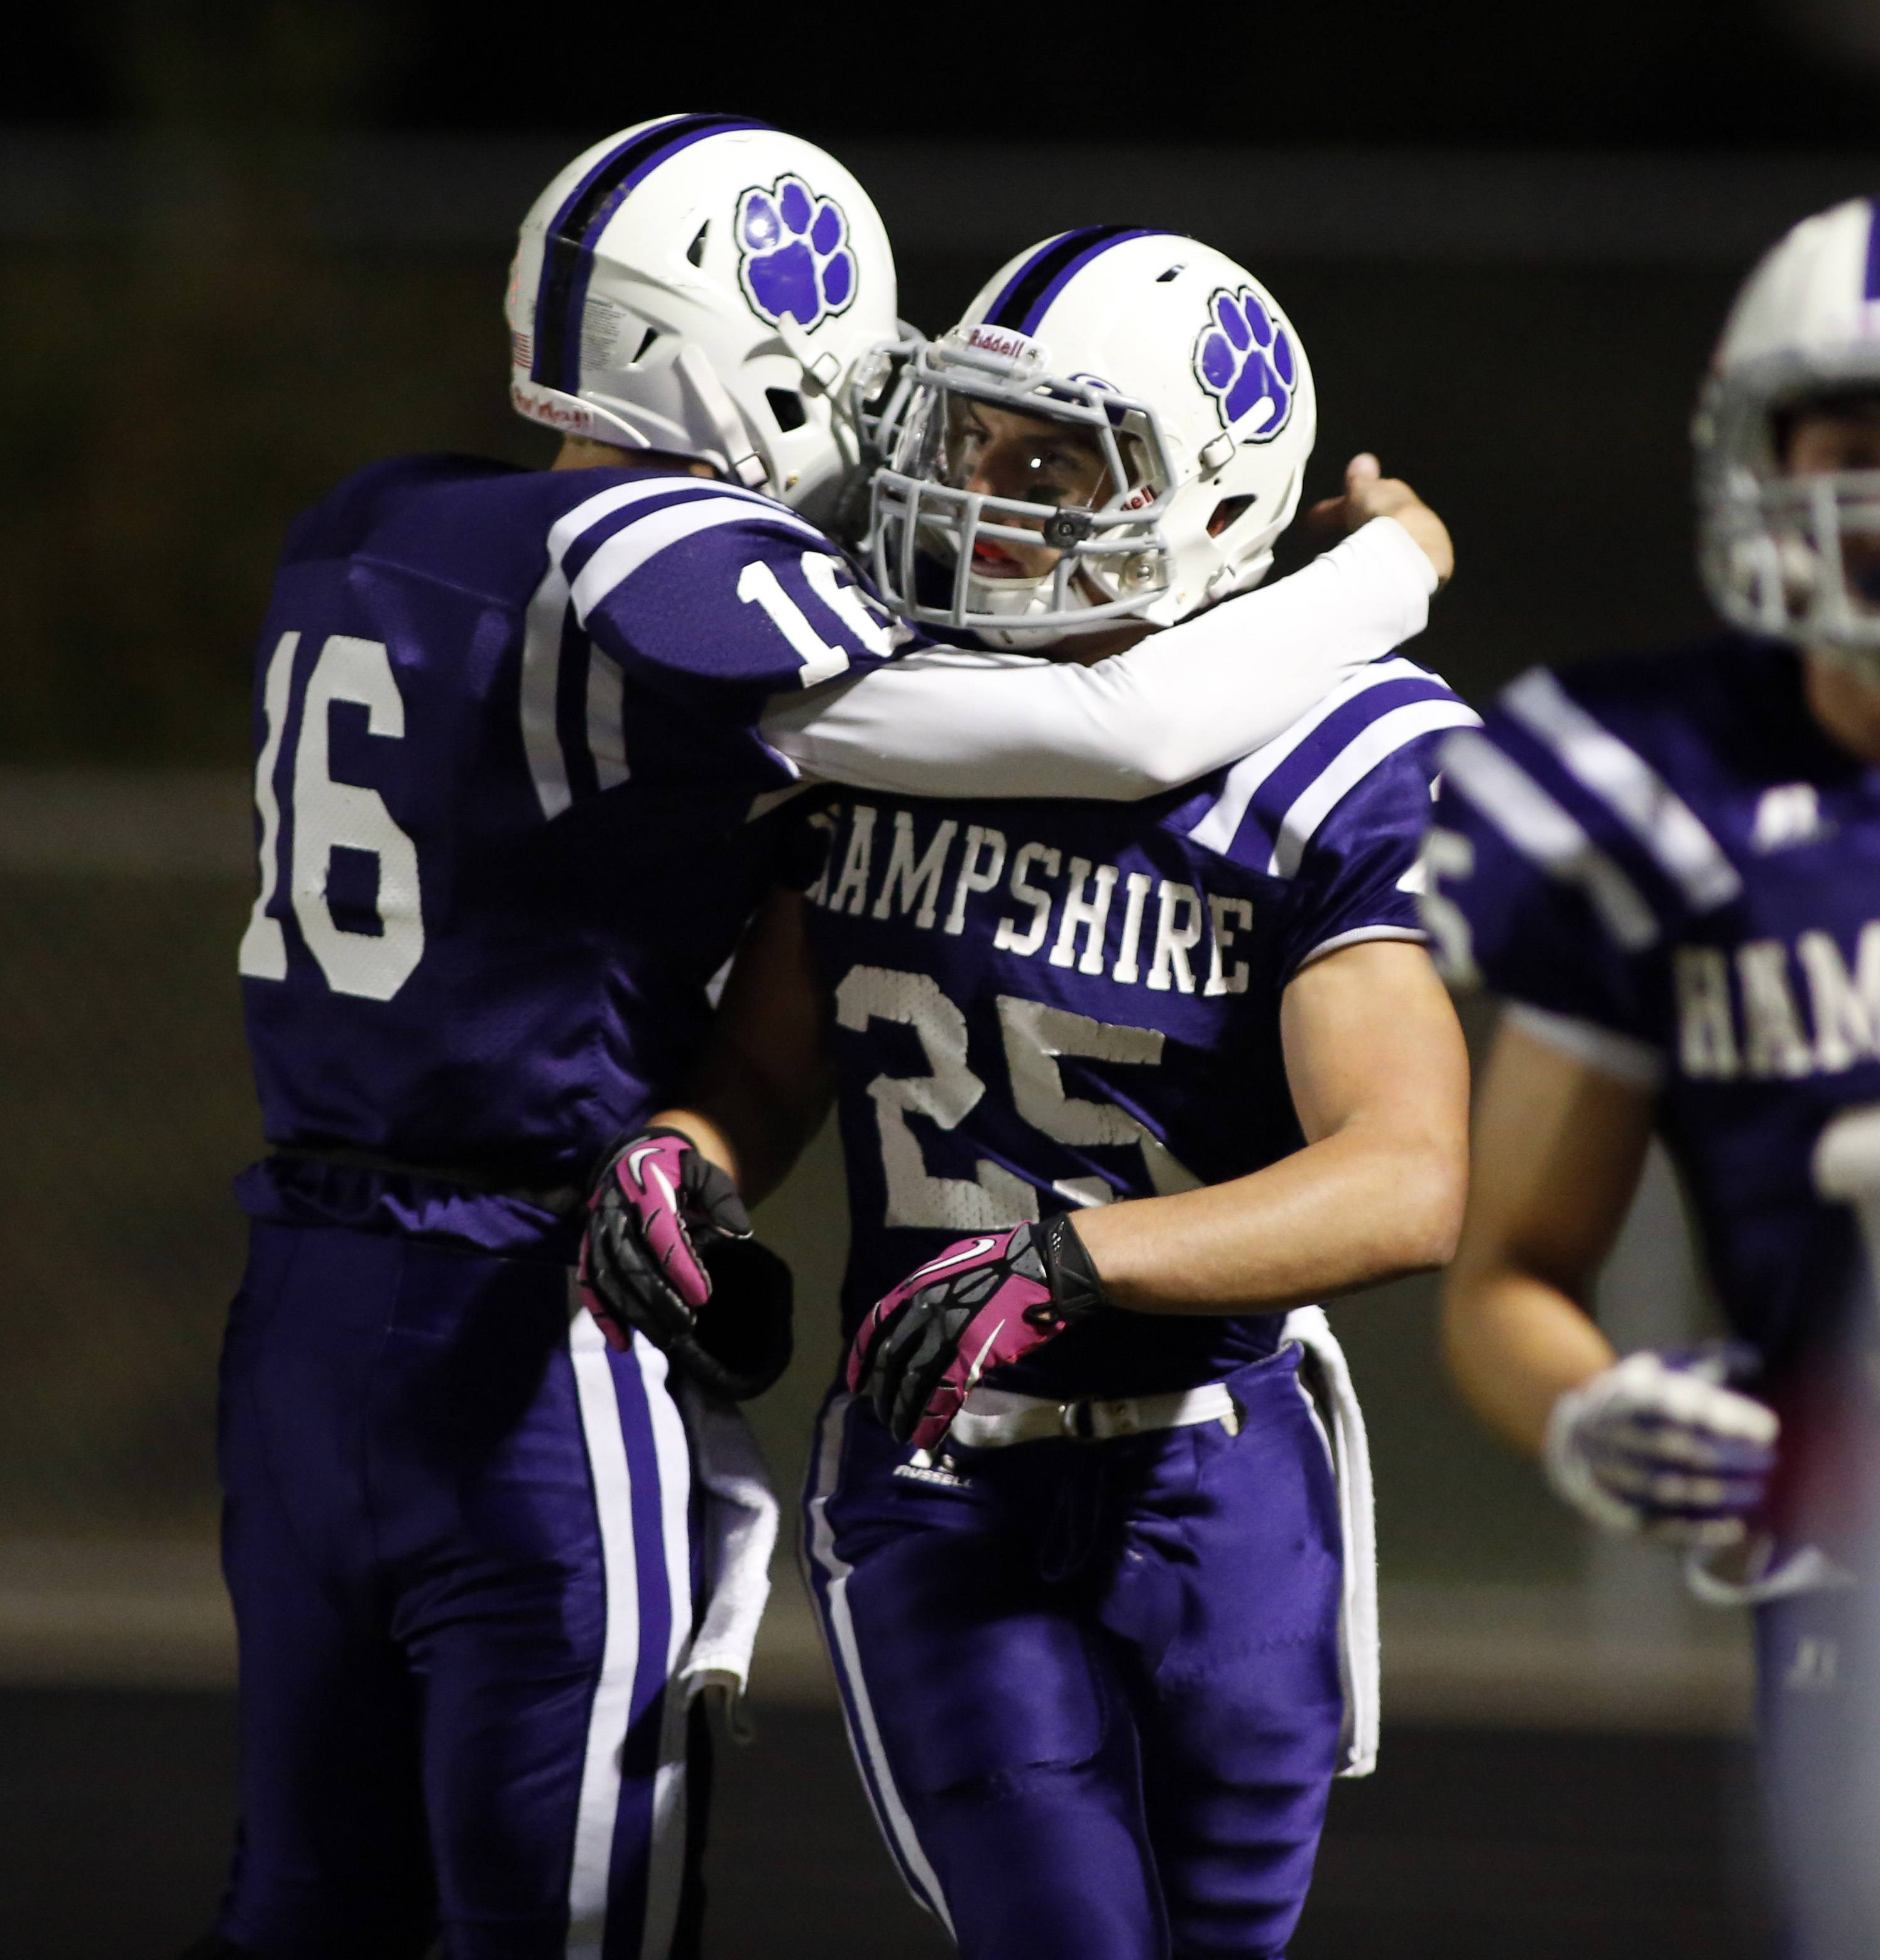 Hampshire's Nick Mohlman greets Nick Kielbasa after a touchdown last season.